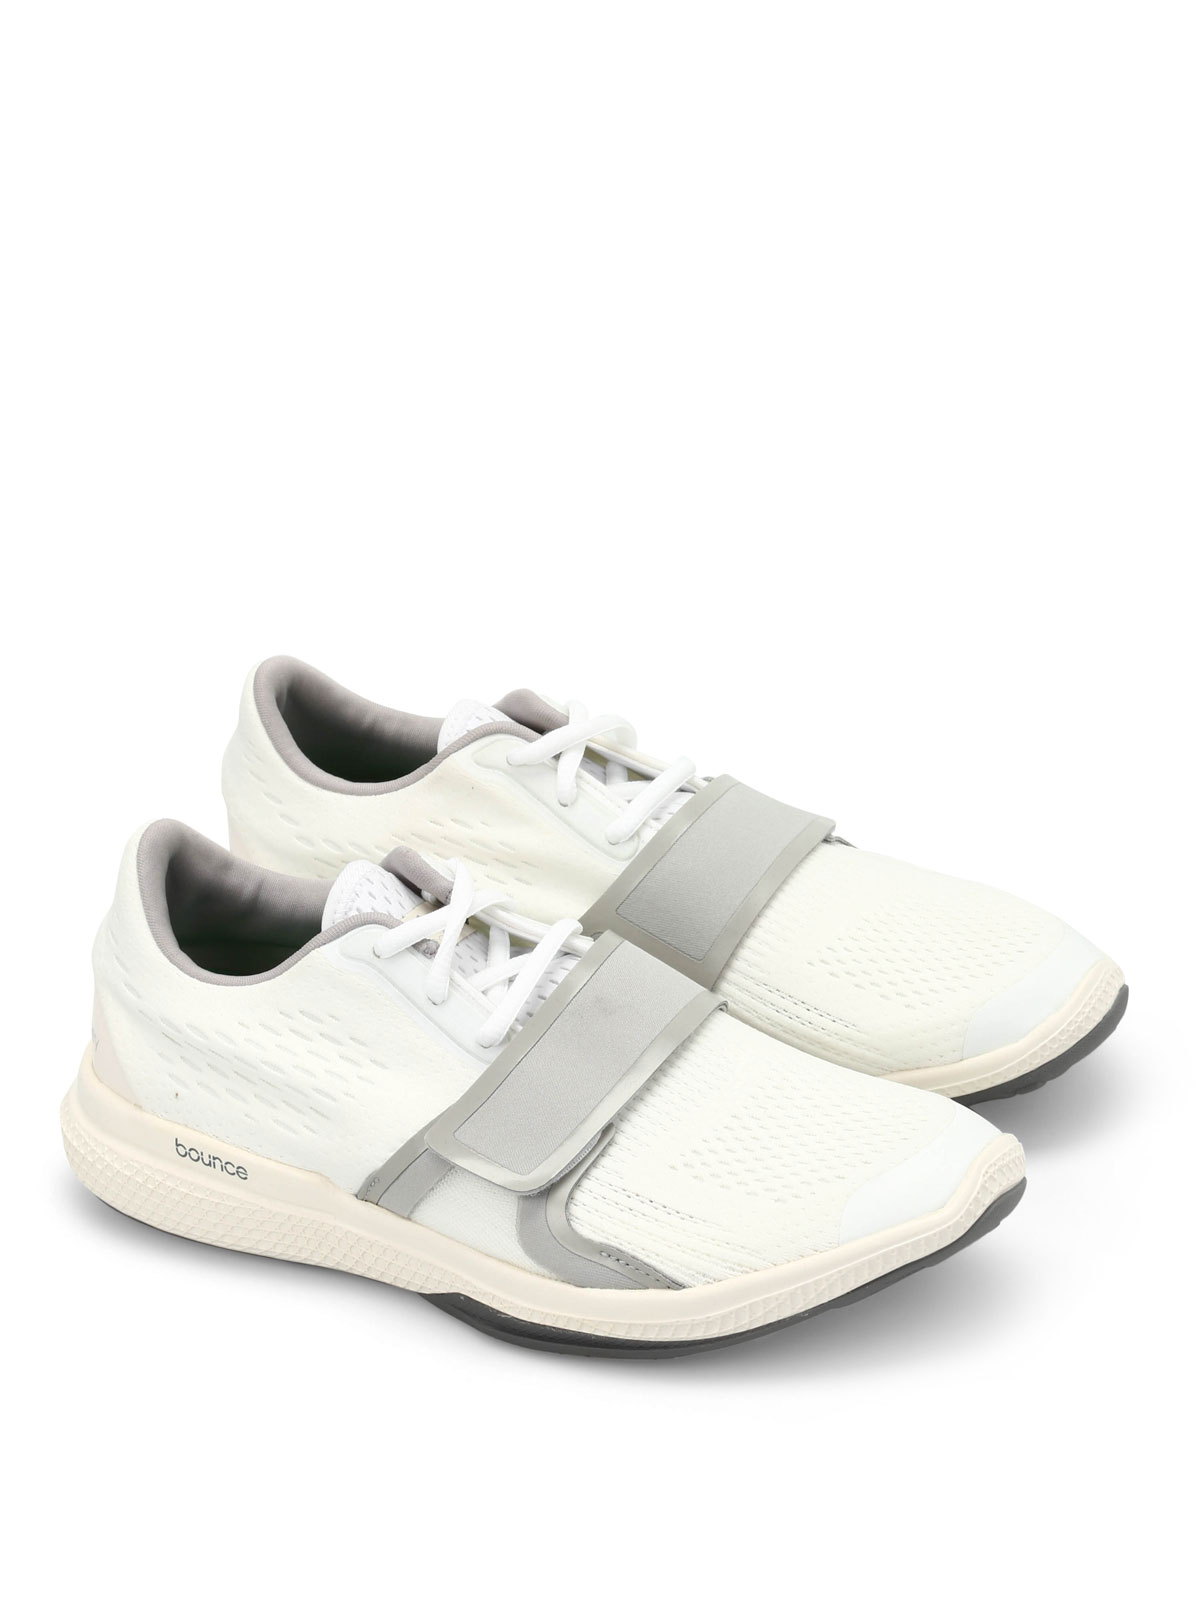 separation shoes 1d48e 19eef ADIDAS BY STELLA MCCARTNEY  trainers - Atani Bounce training shoes